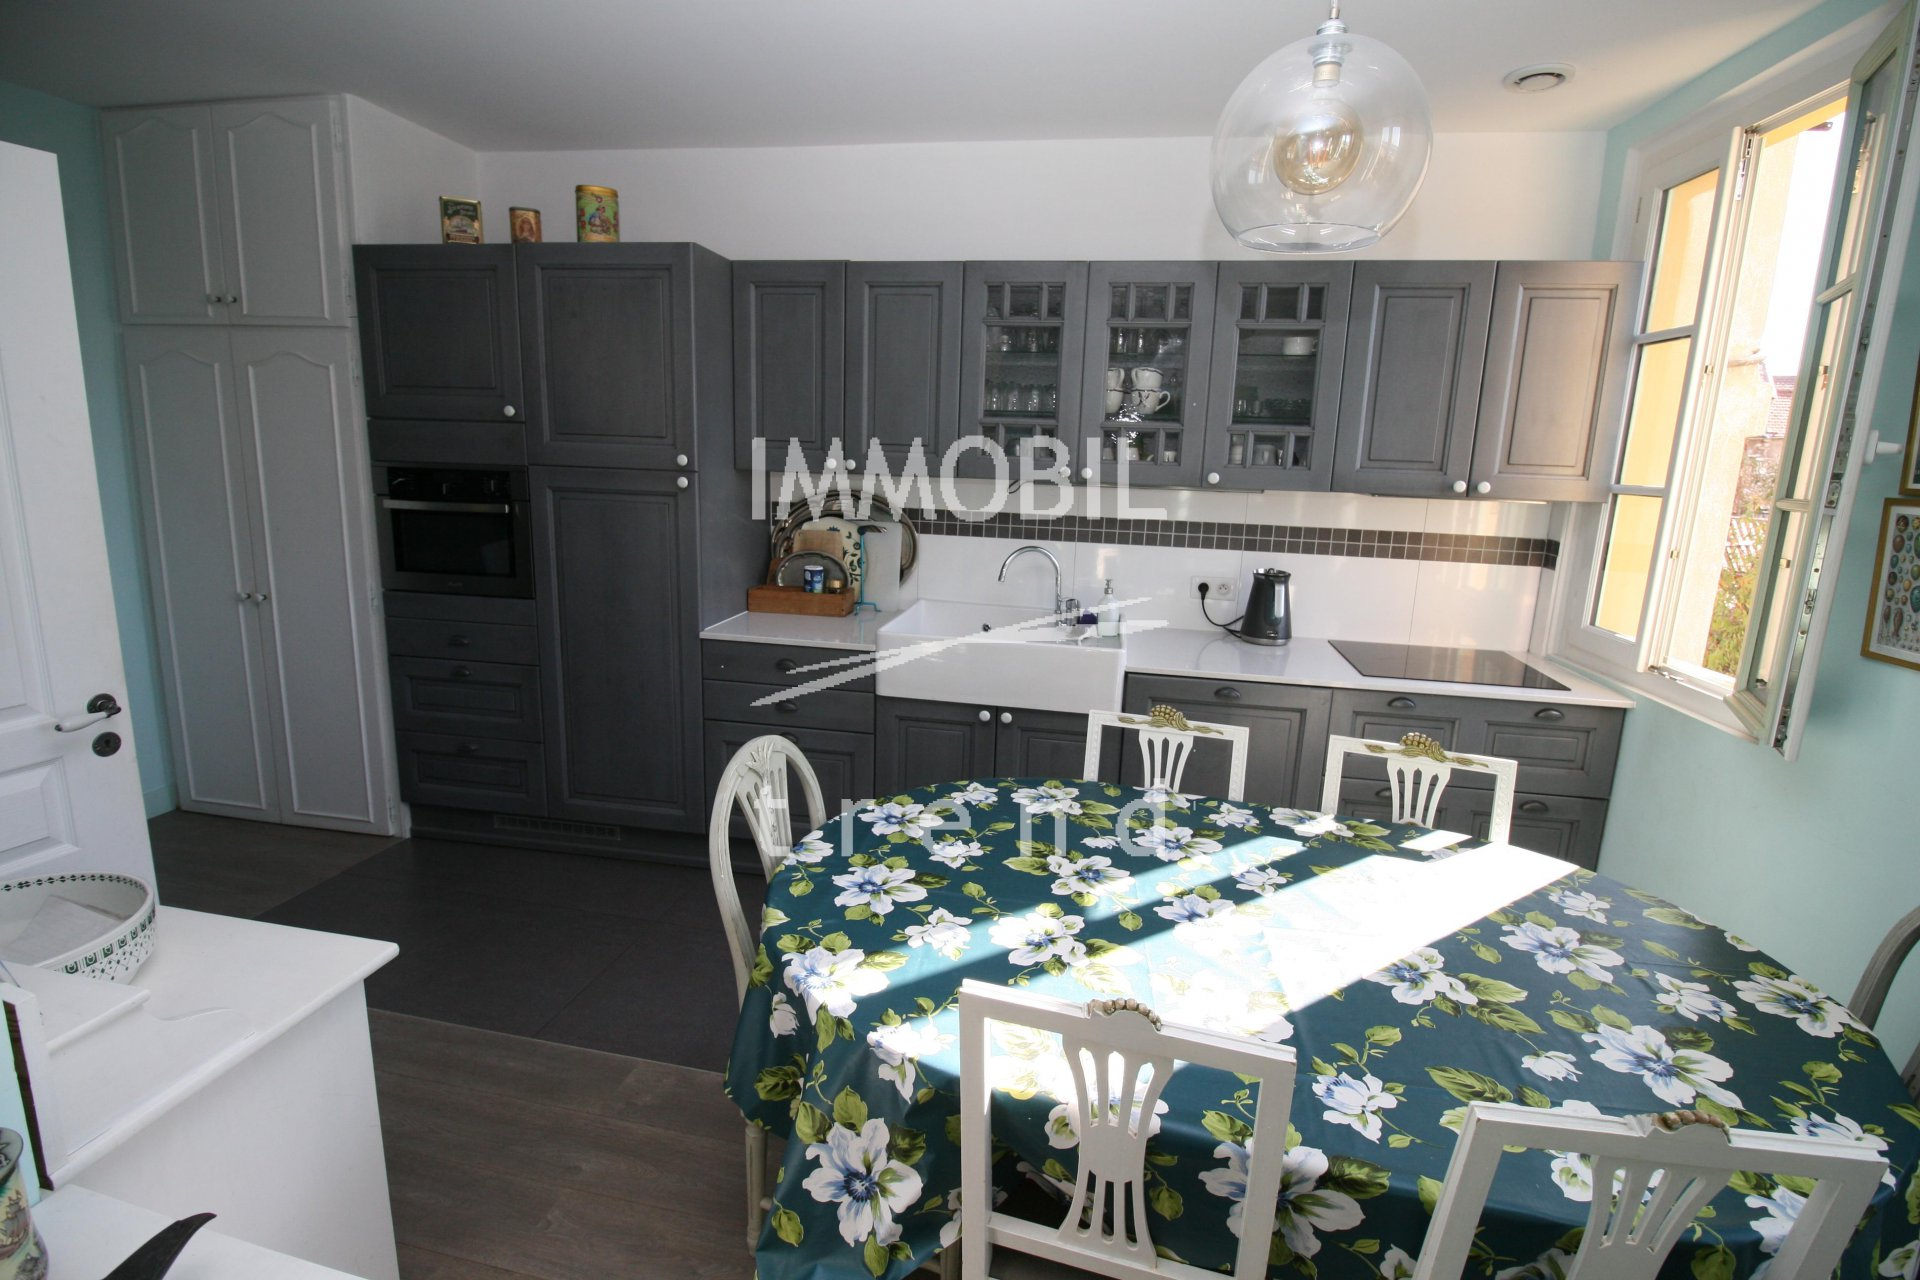 EXCLUSIVITE' - NICE CENTRE - VIELLE VILLE - CHARMANT 3 PIECES EN PARFAIT ETAT.